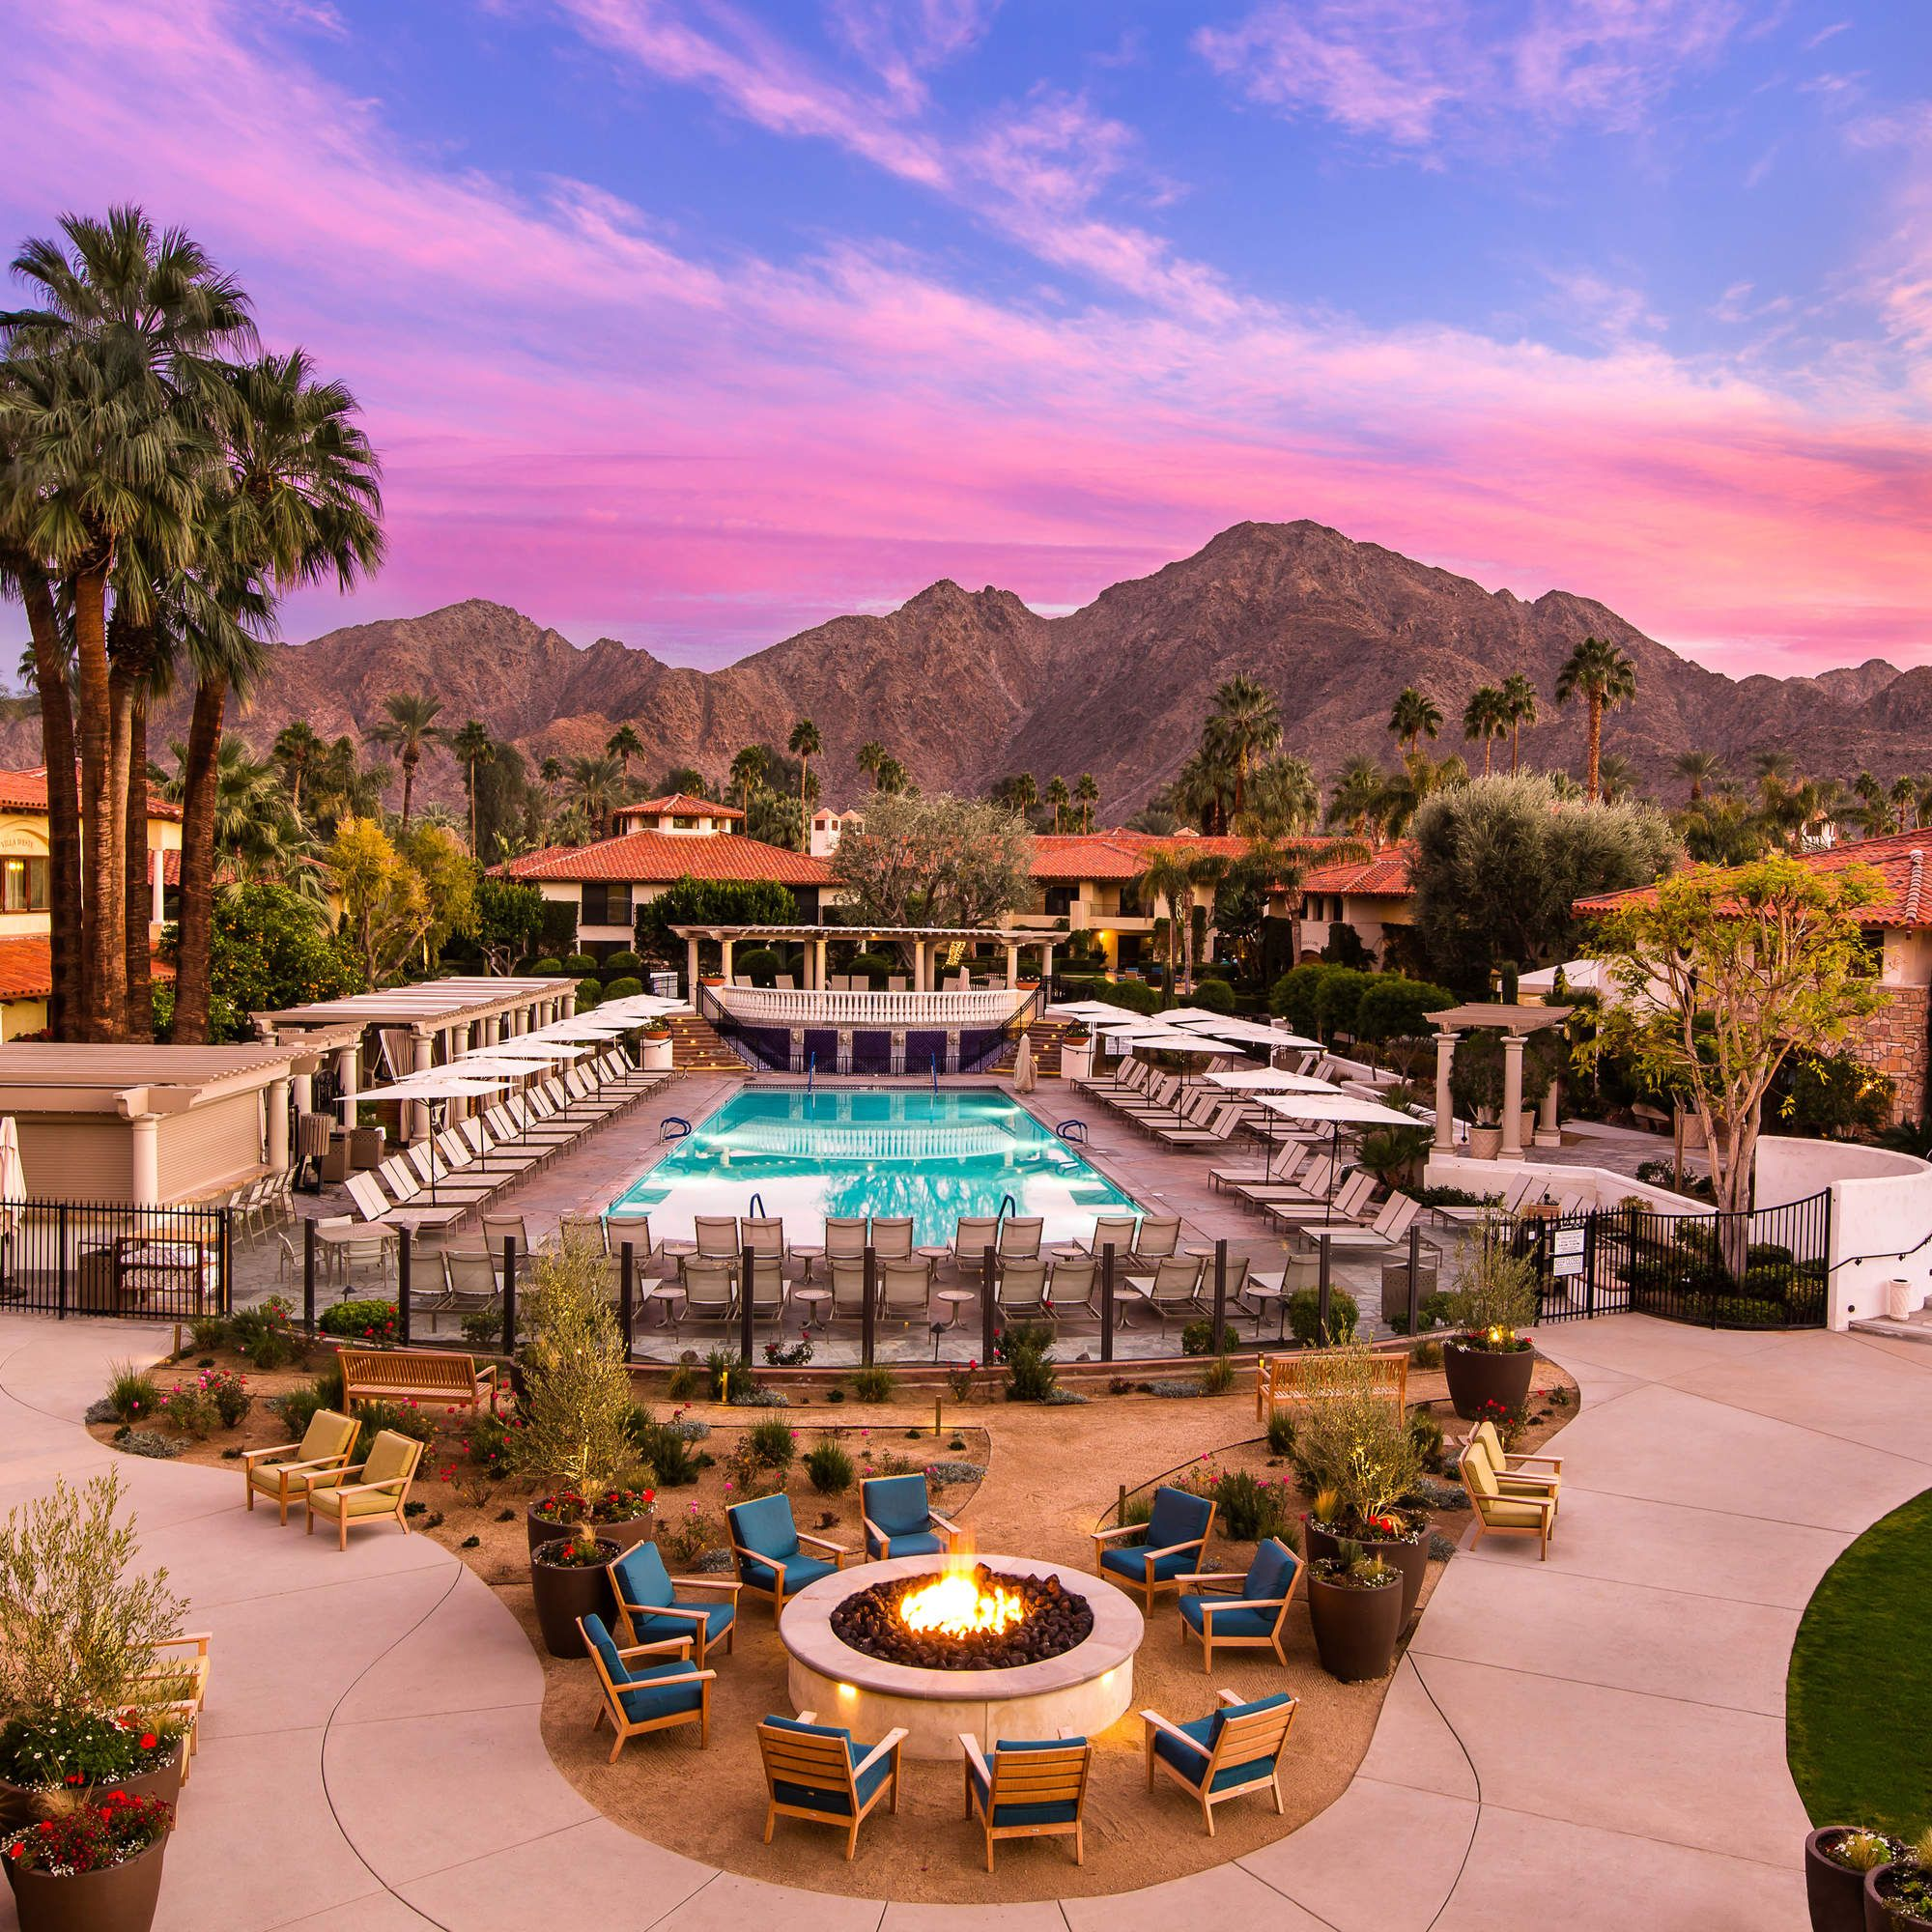 How to Have the Ultimate Outdoor Adventure in Palm Springs